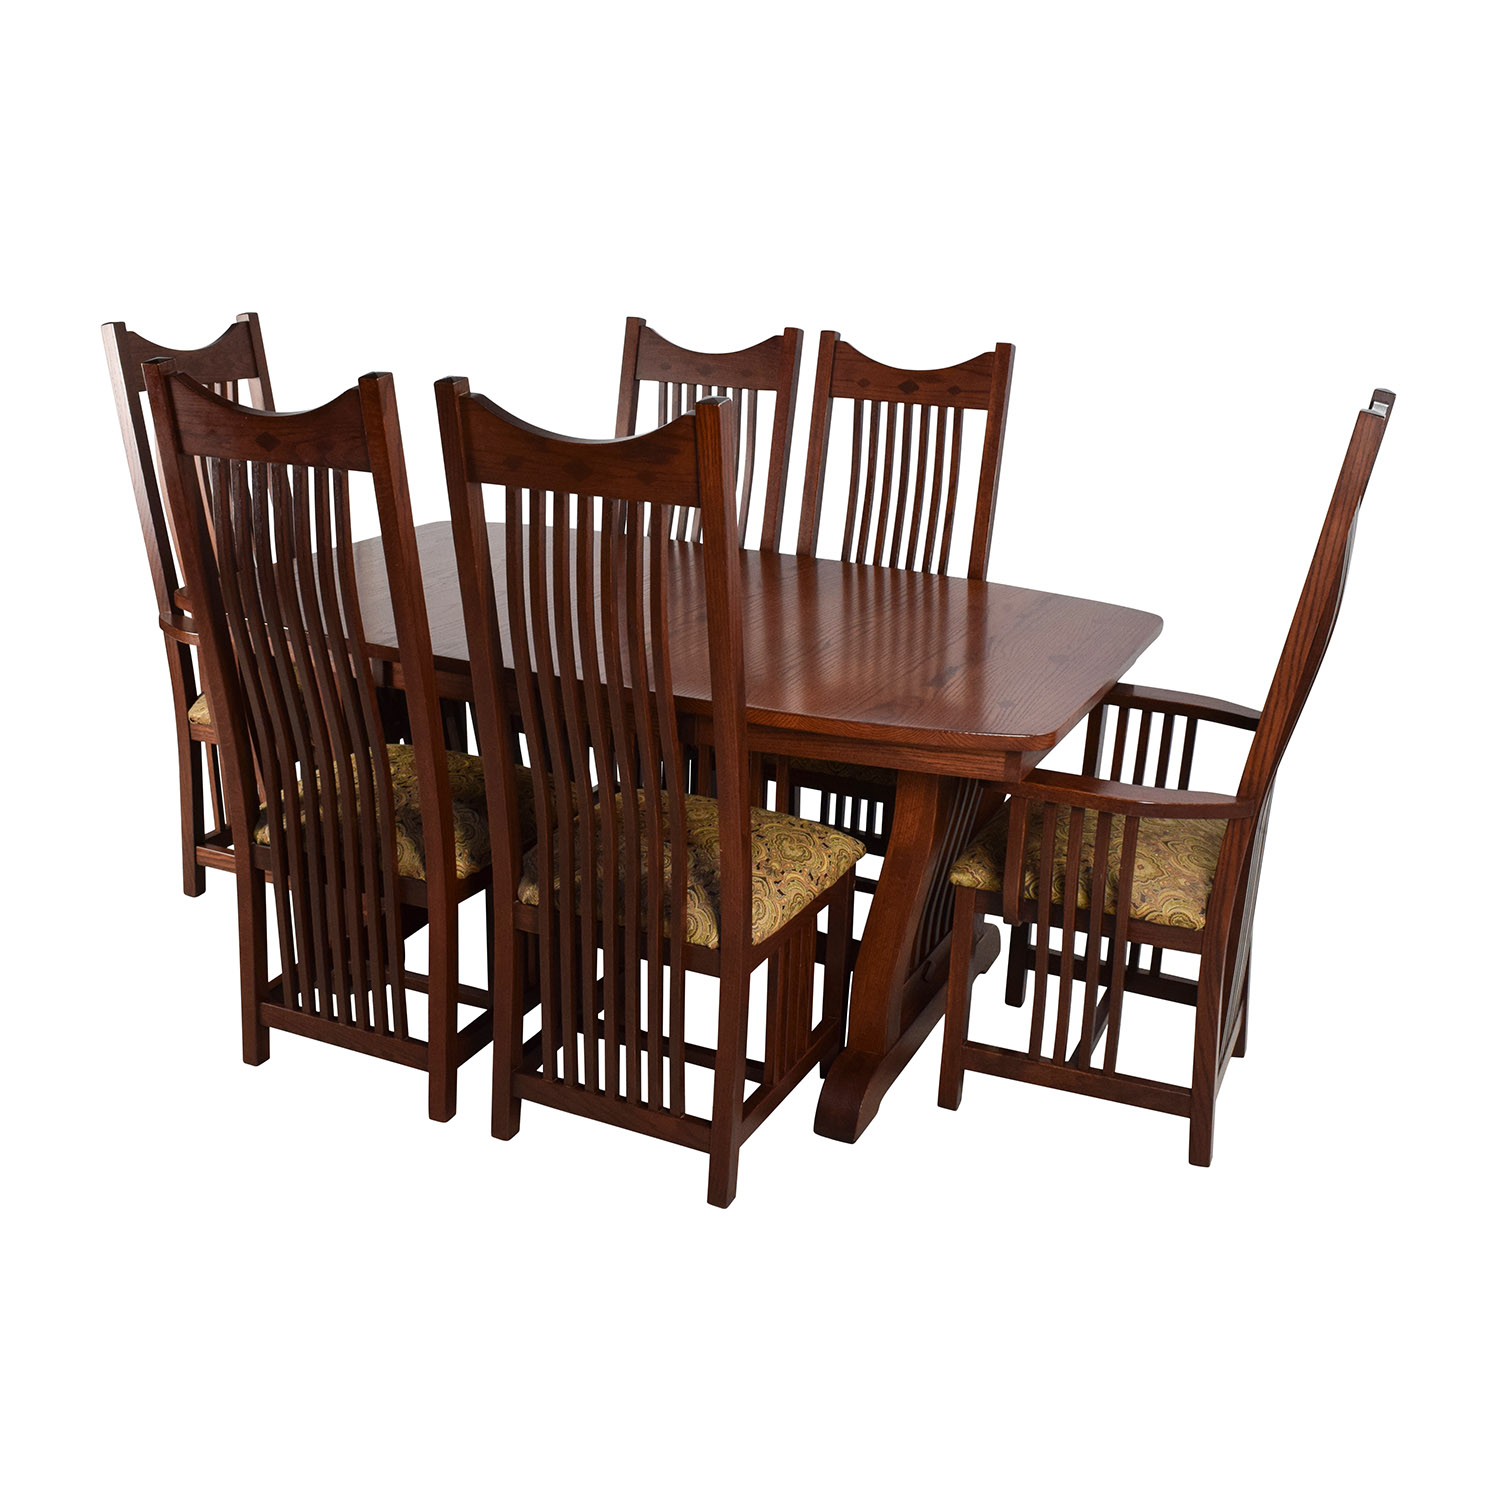 Homestead Furniture Homestead Furniture Classic Mission Solid Oak Dining Set discount